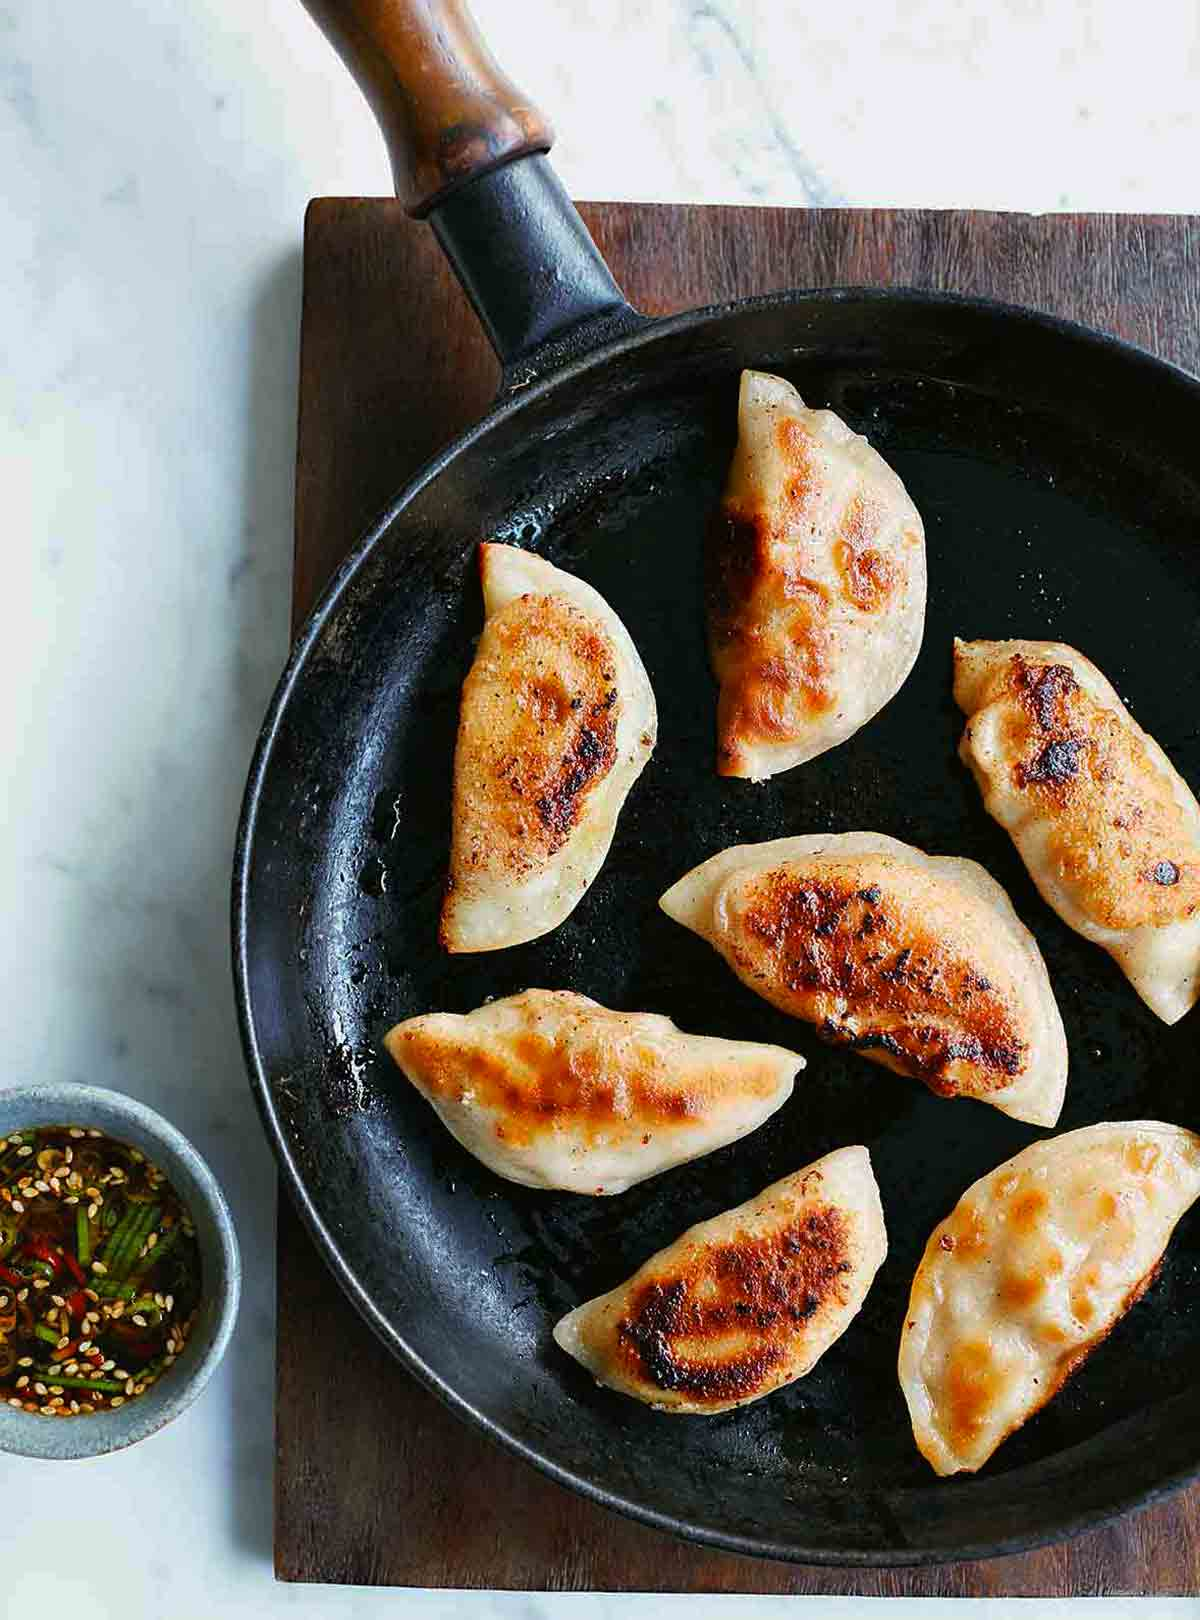 A black skillet with seven pork dumplings in it on a wooden surface and a cup of dipping sauce beside it.